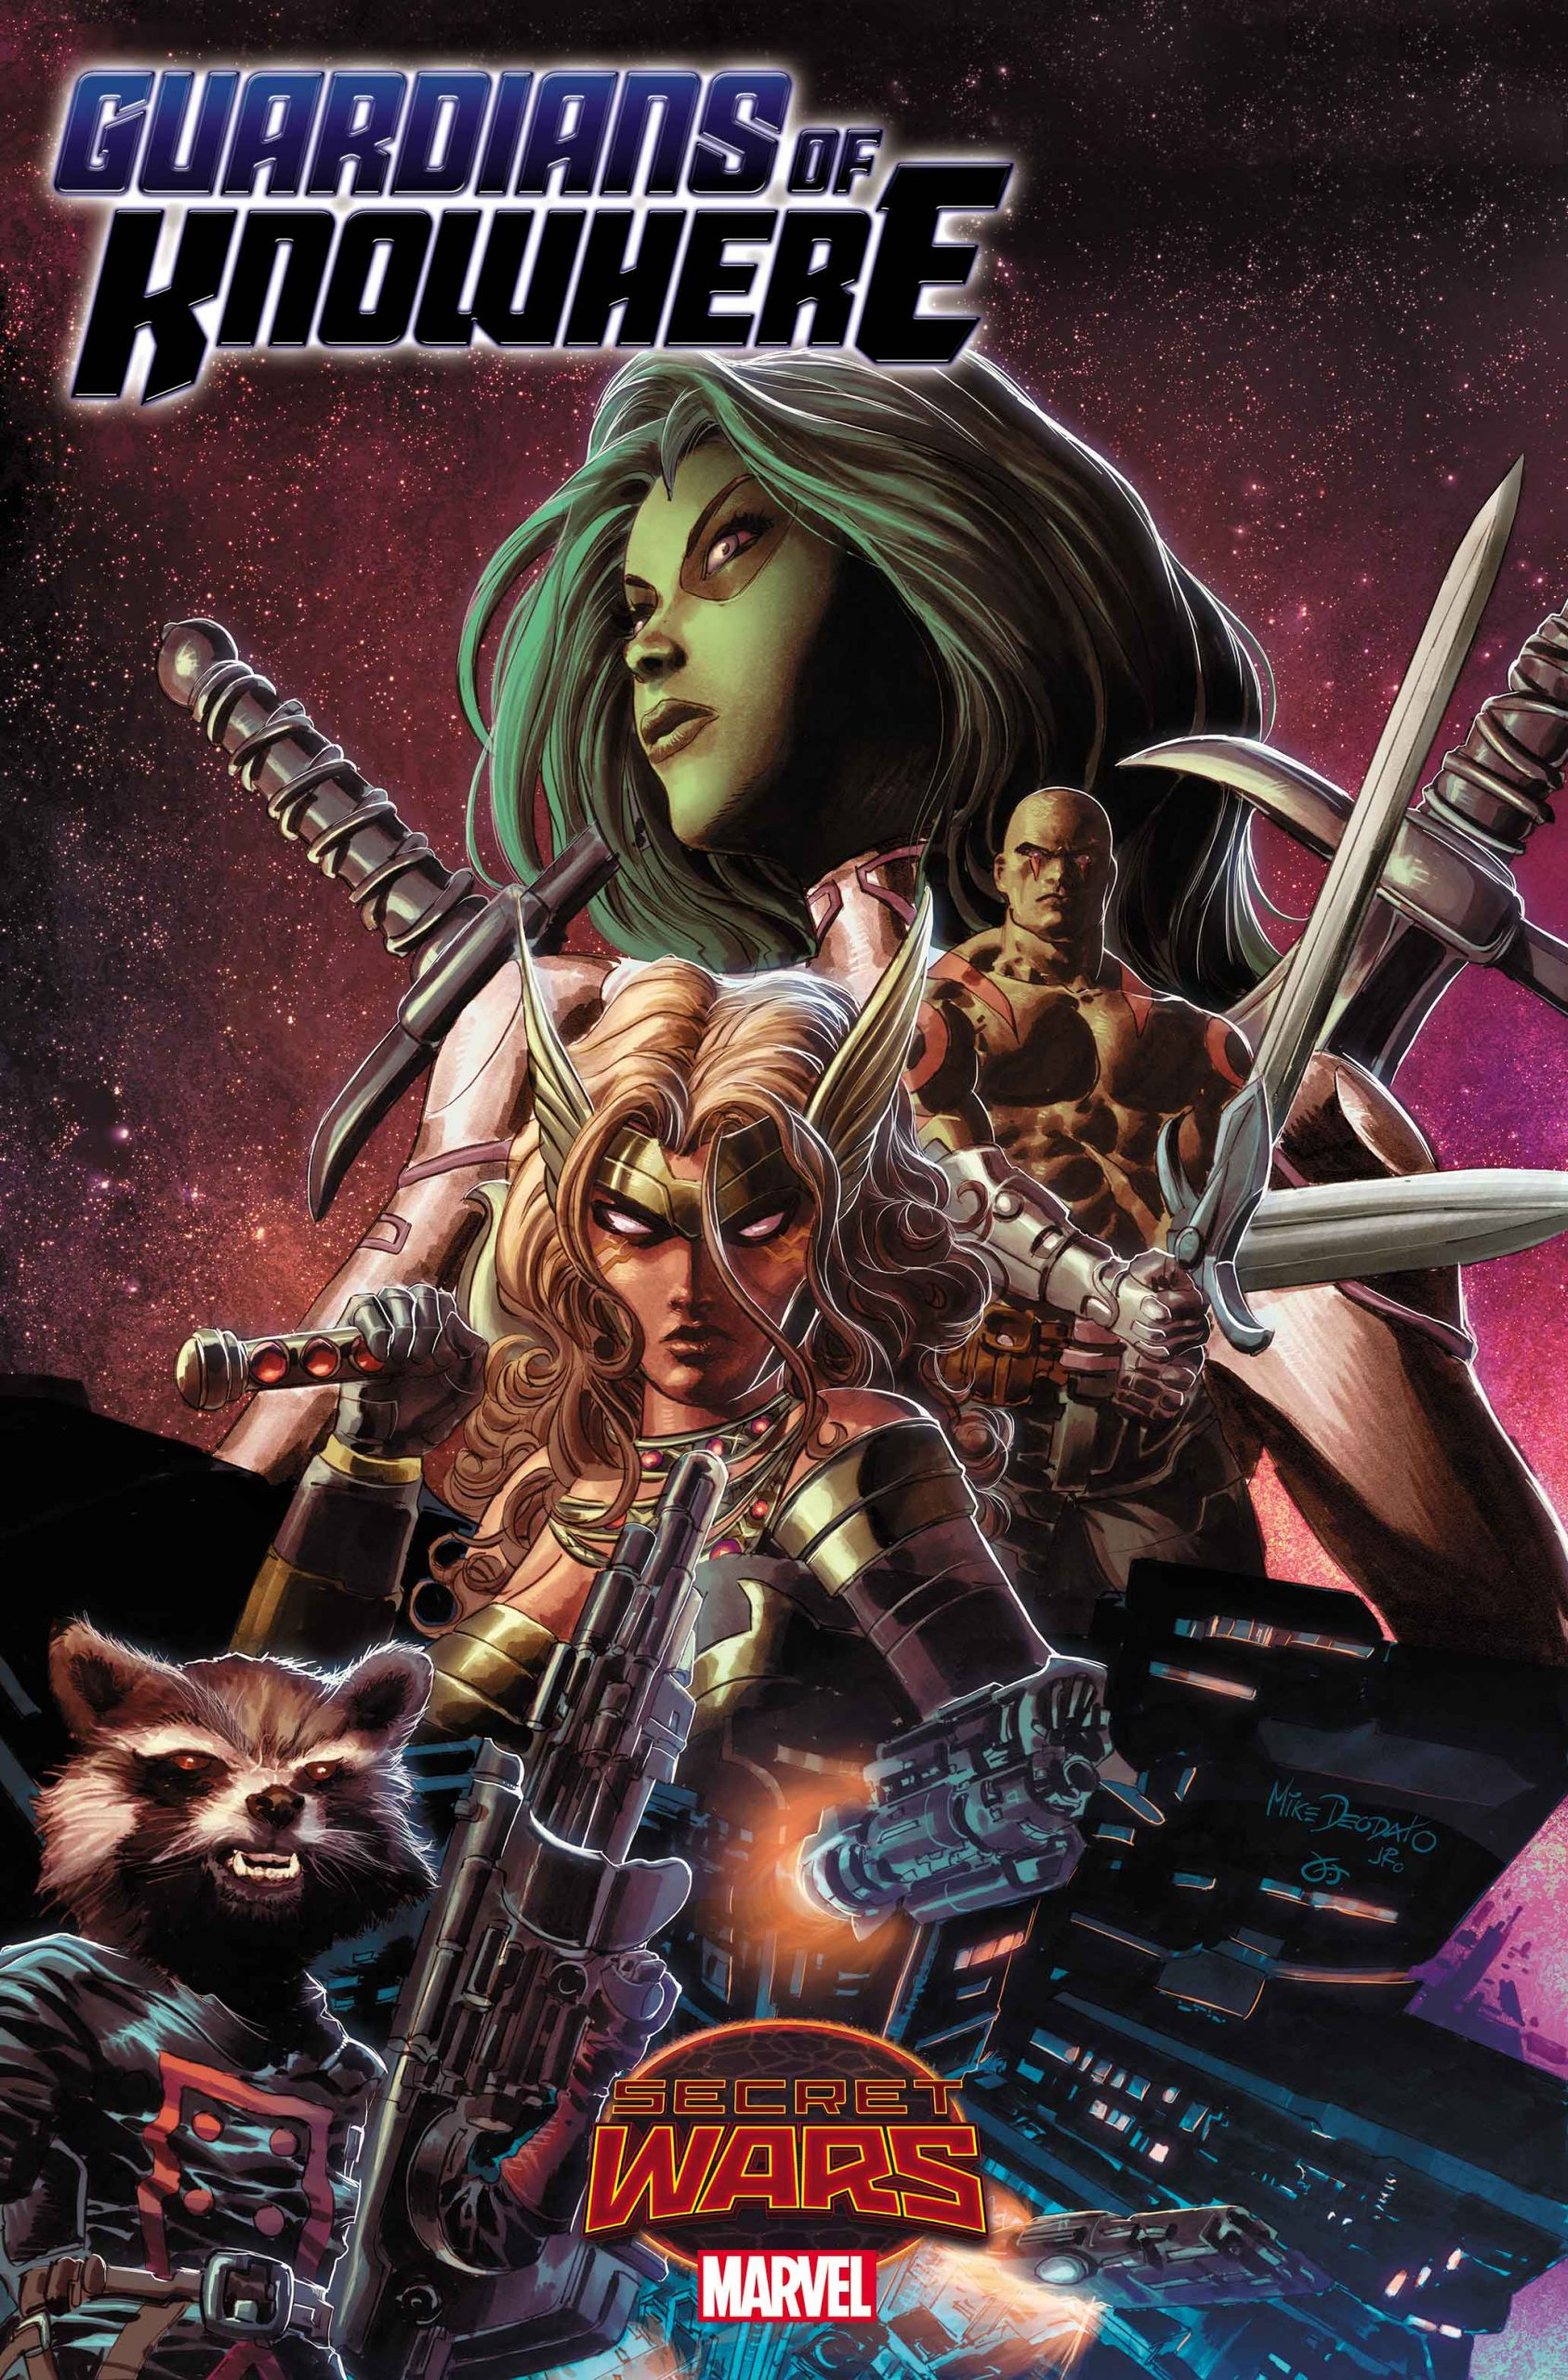 Guardians_of_Knowhere_1_Cover.jpg